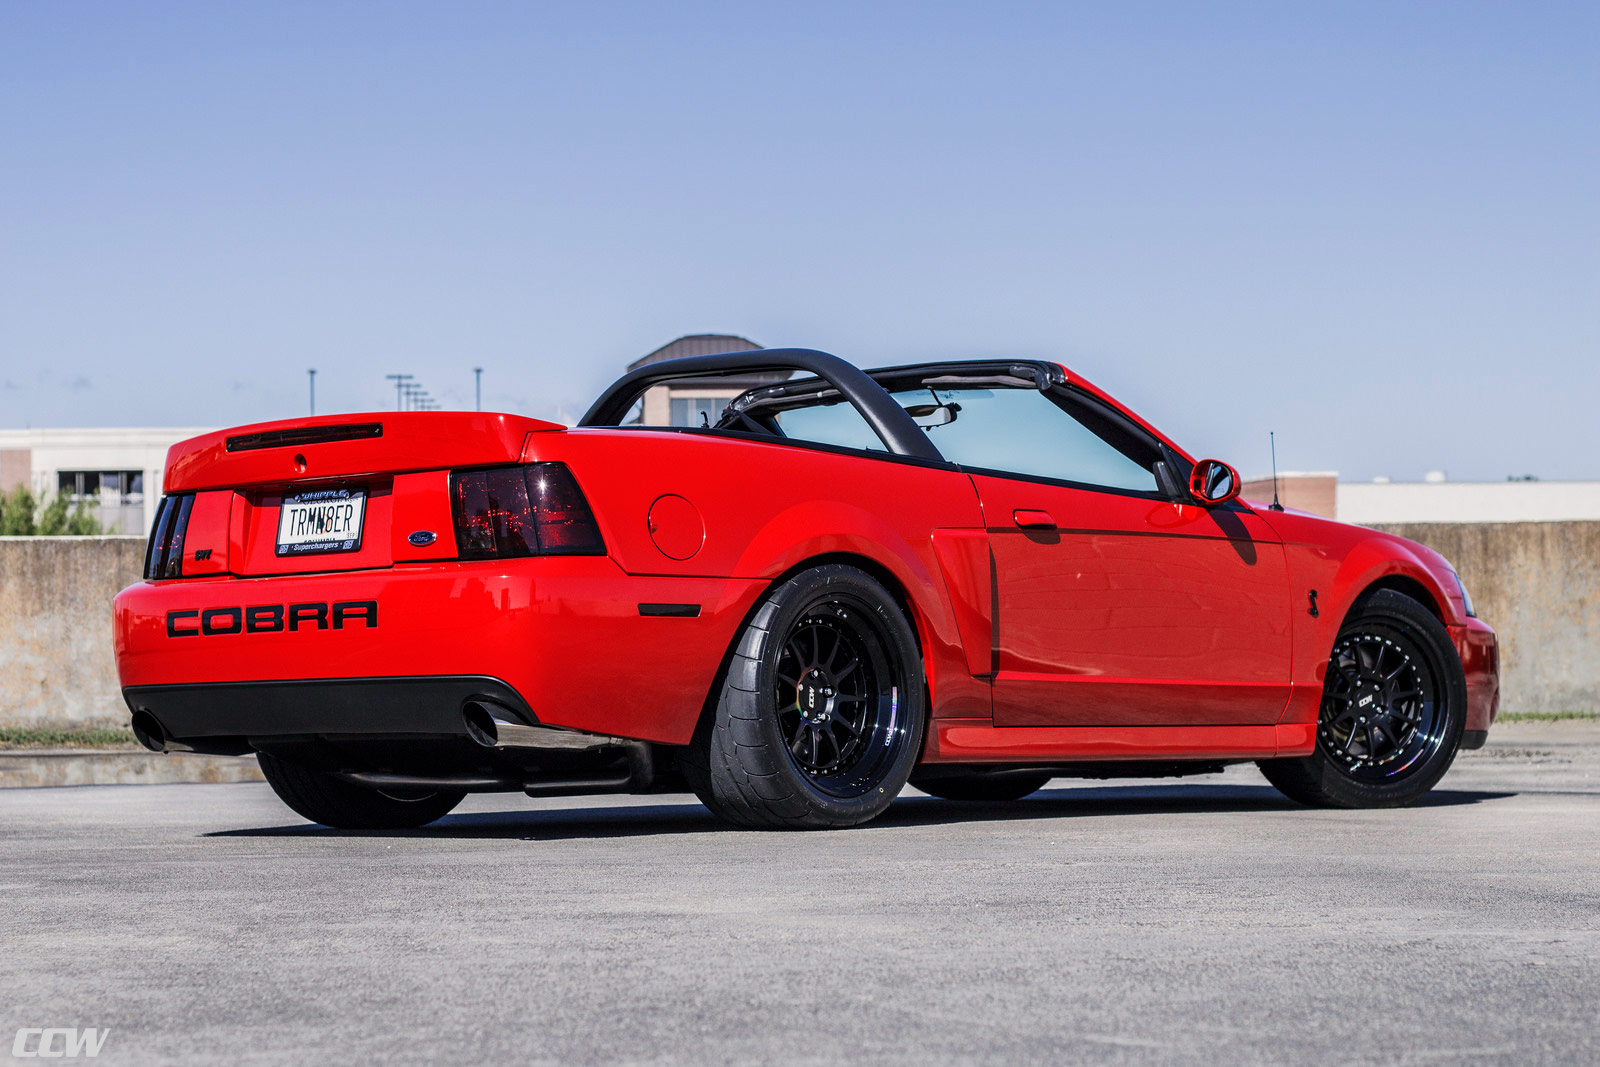 Ford Mustang Terminator 2001